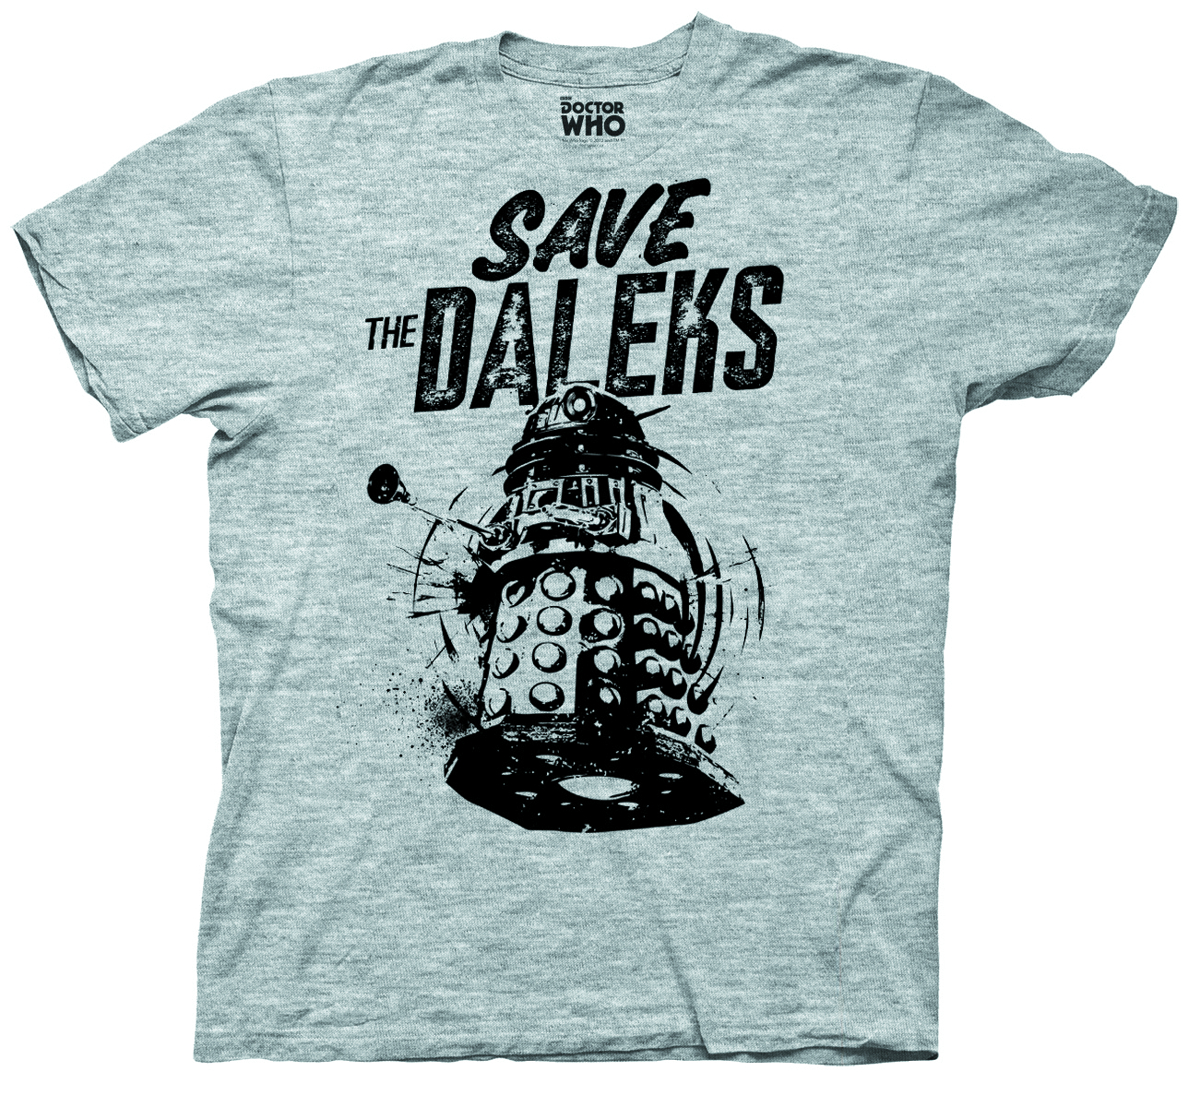 DOCTOR WHO SAVE THE DALEKS GRAY T/S LG